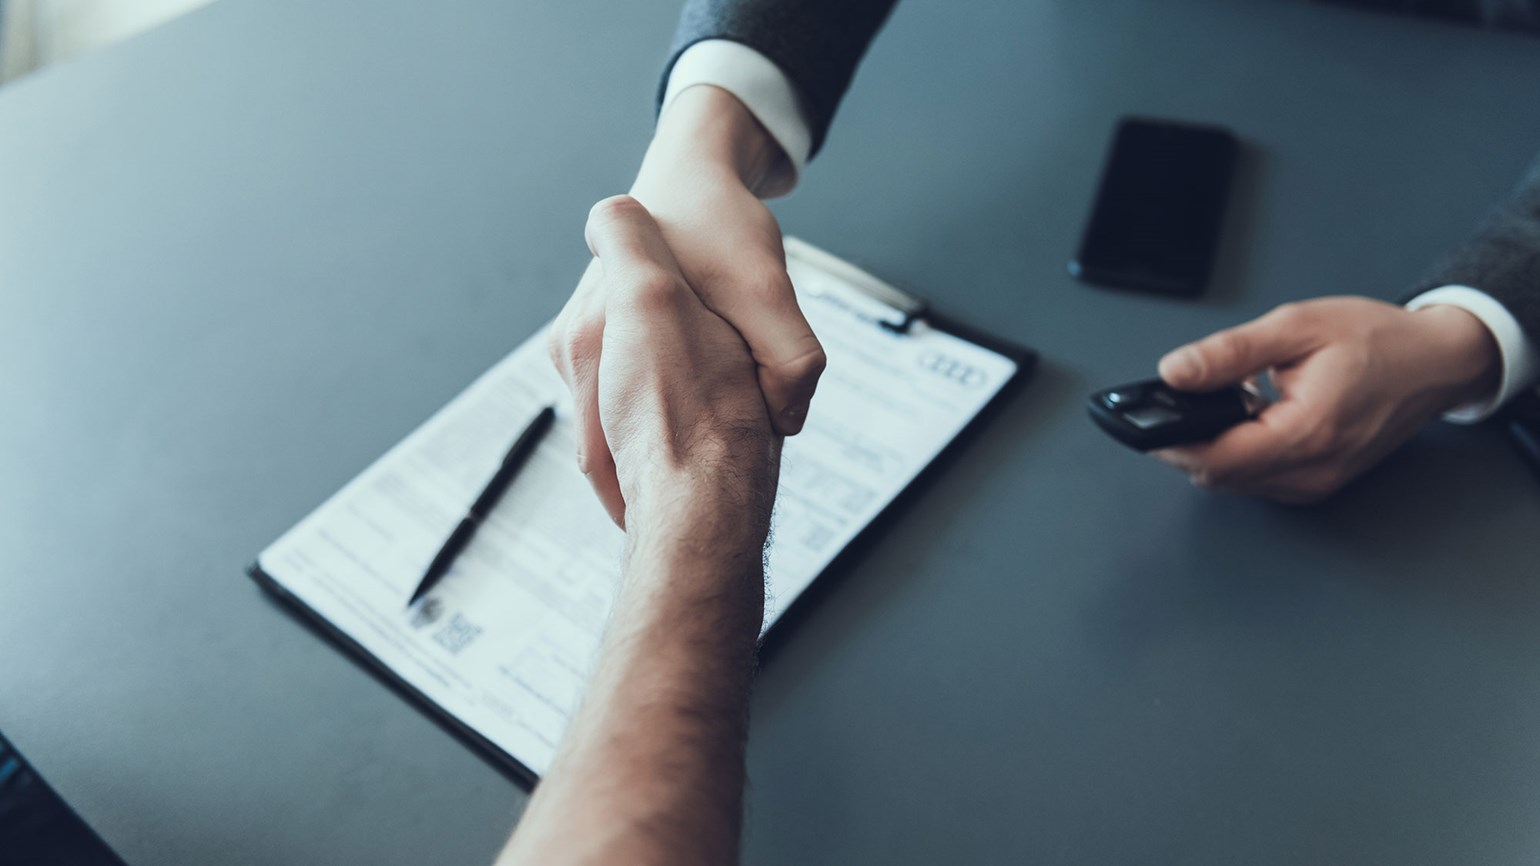 Business agreement handshake [Credit: VGstockstudio/Shutterstock.com]